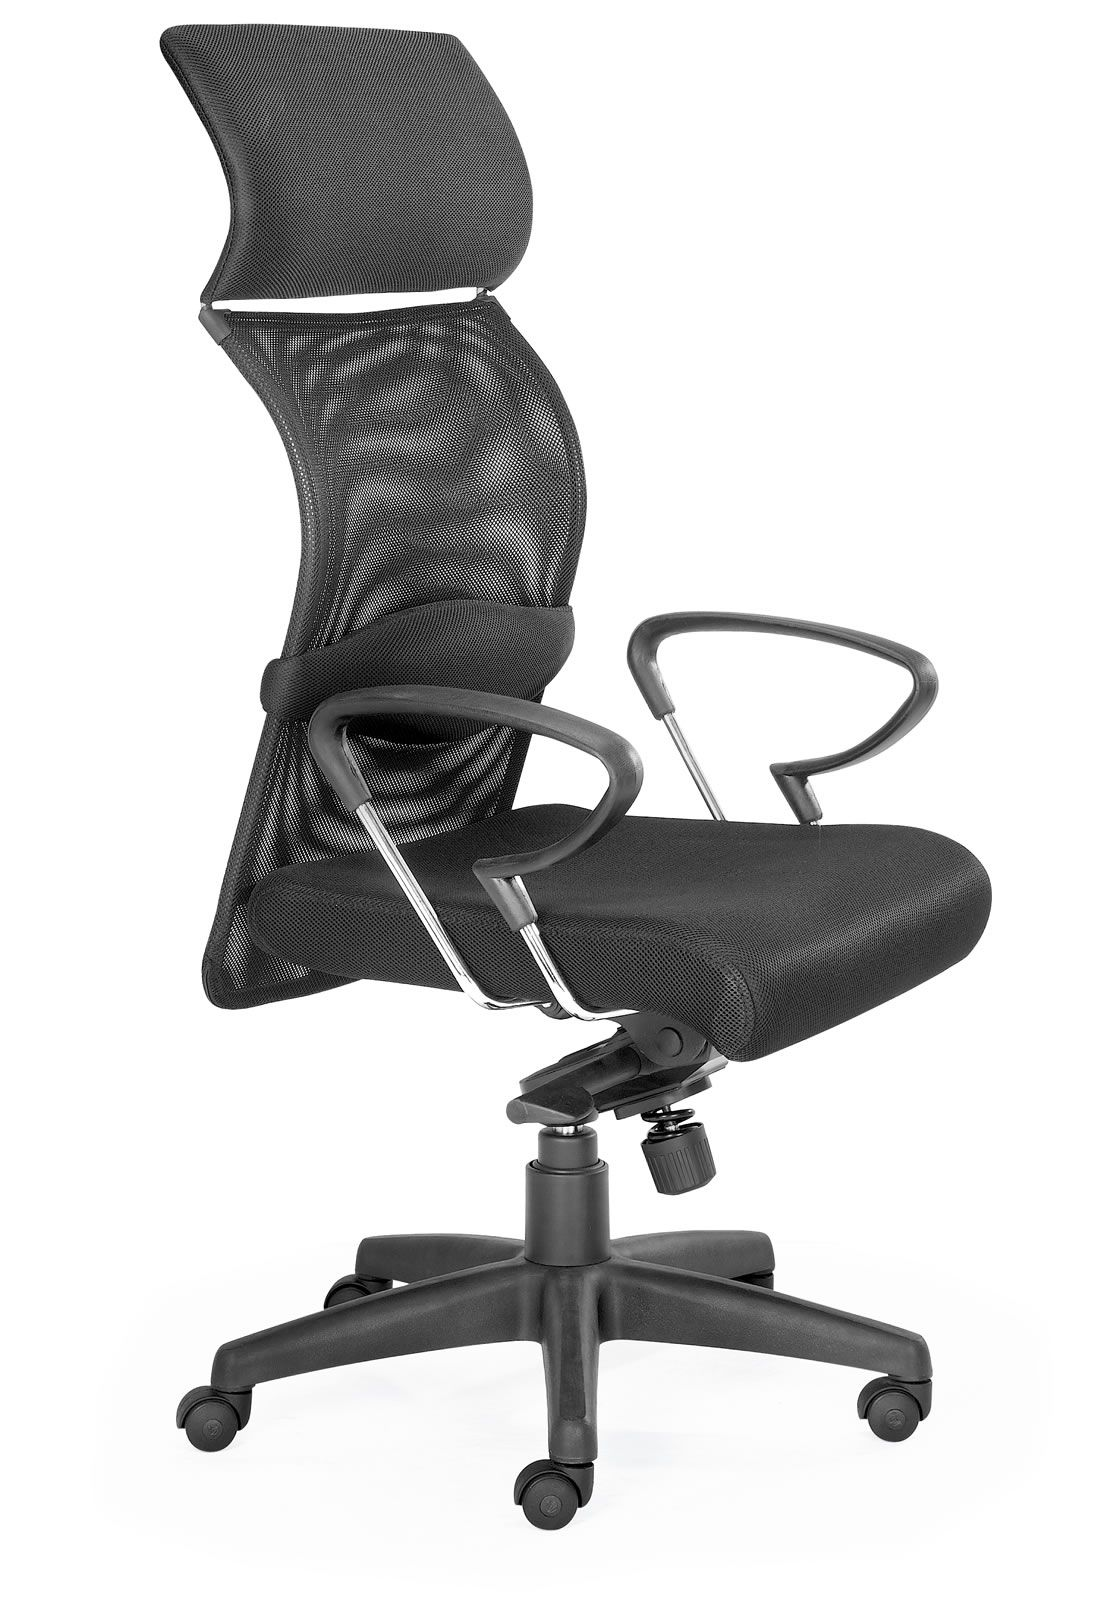 1000 images about chairs amazing quirky stunning on pinterest office chairs ergonomic office chair and comfortable office chair bedroommarvellous office chairs bones furniture company